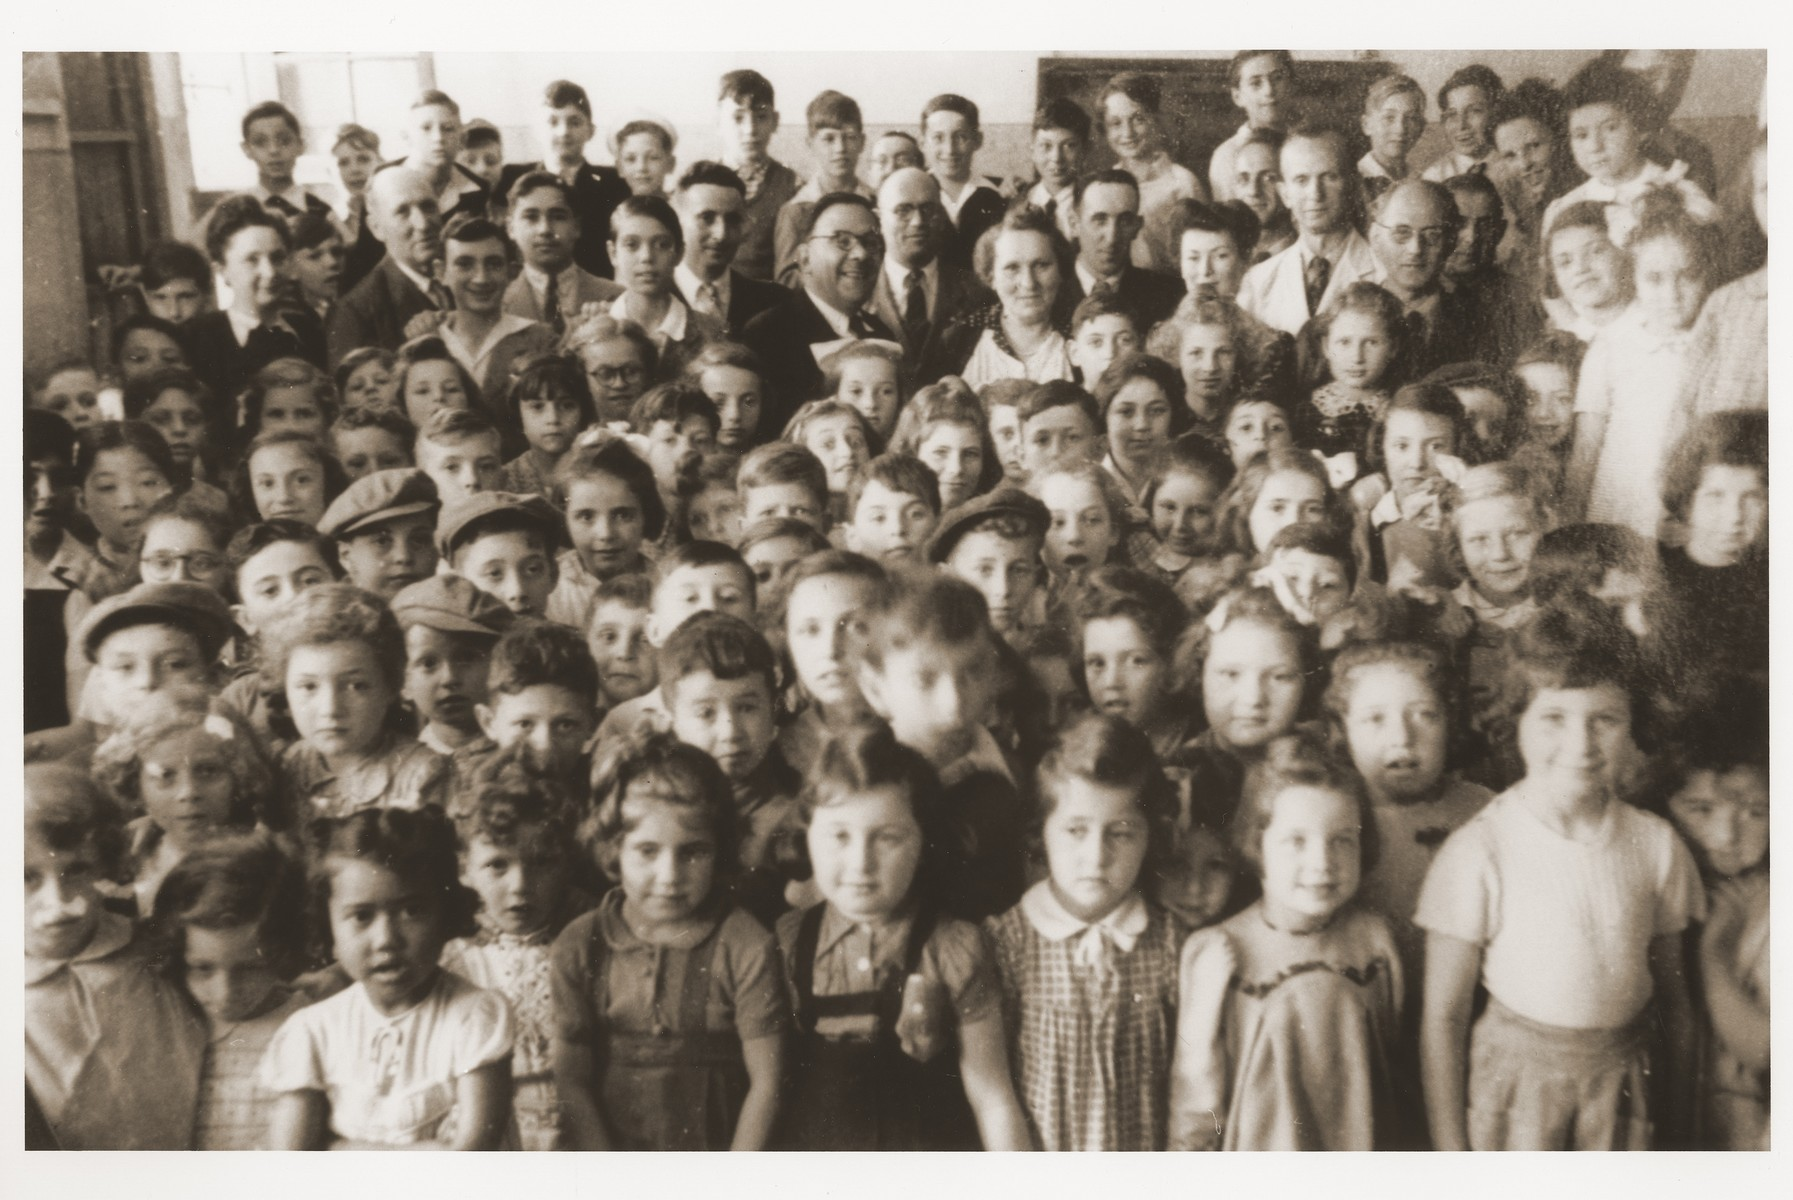 Group portrait of pupils and teachers at the Freysinger School for Jewish refugees in Shanghai.  Among those pictured is Rolf Eis, second row, third from the left.